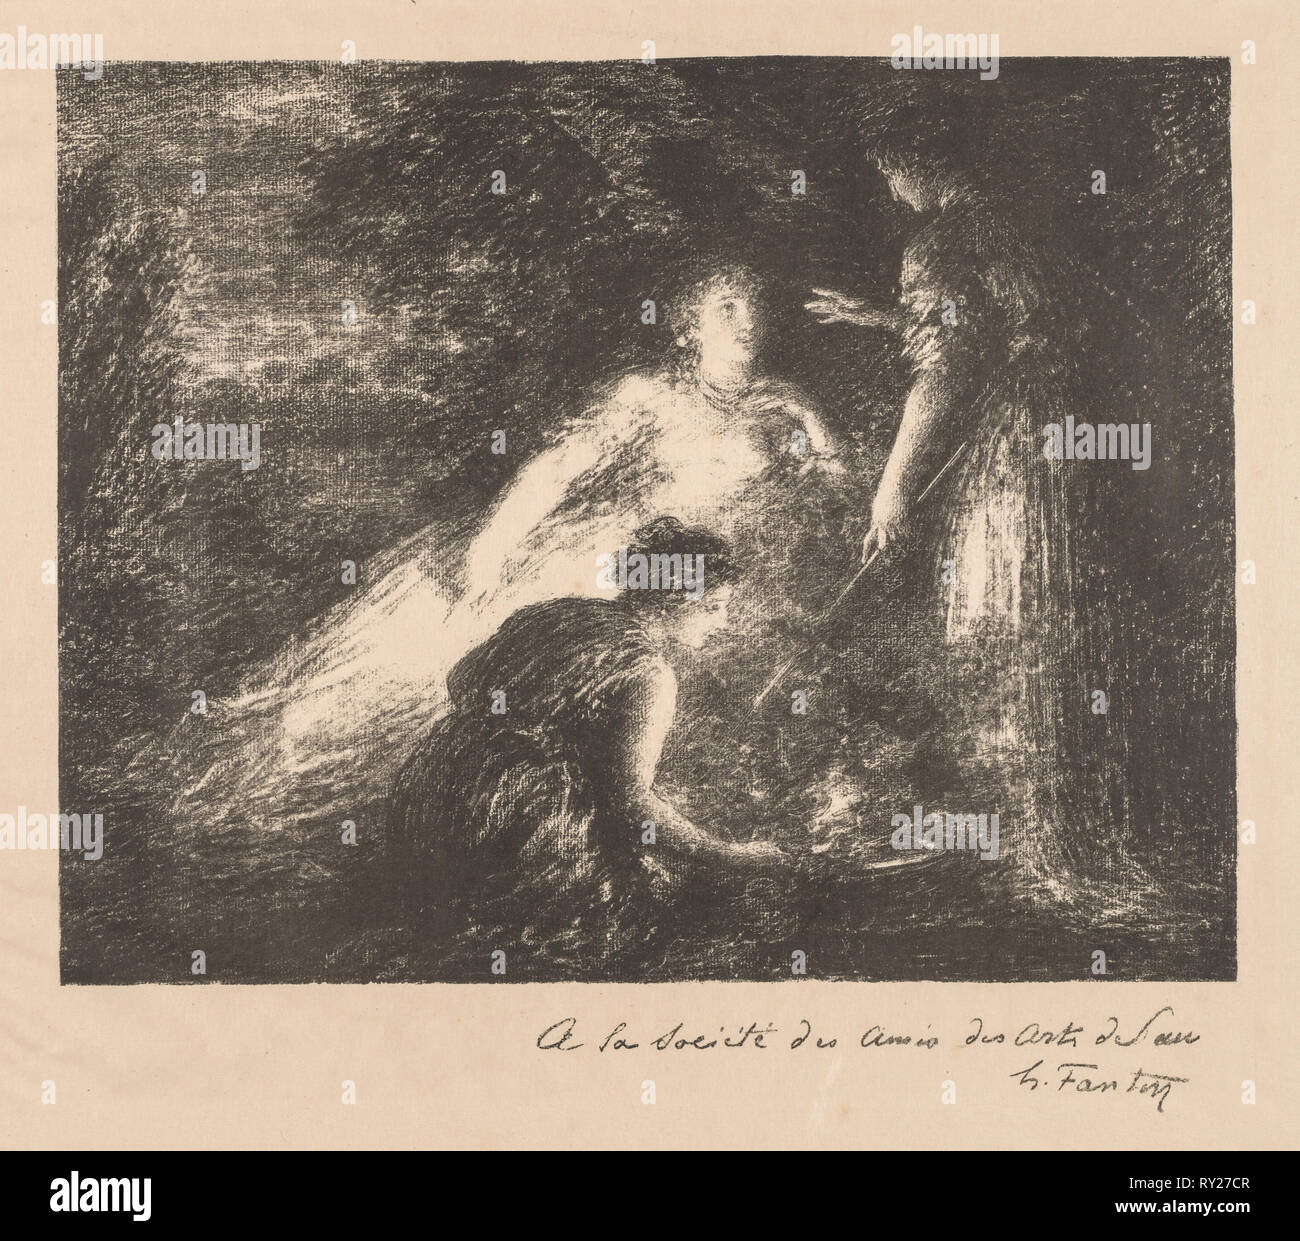 Witchcraft, 1899. Henri Fantin-Latour (French, 1836-1904). Lithograph - Stock Image